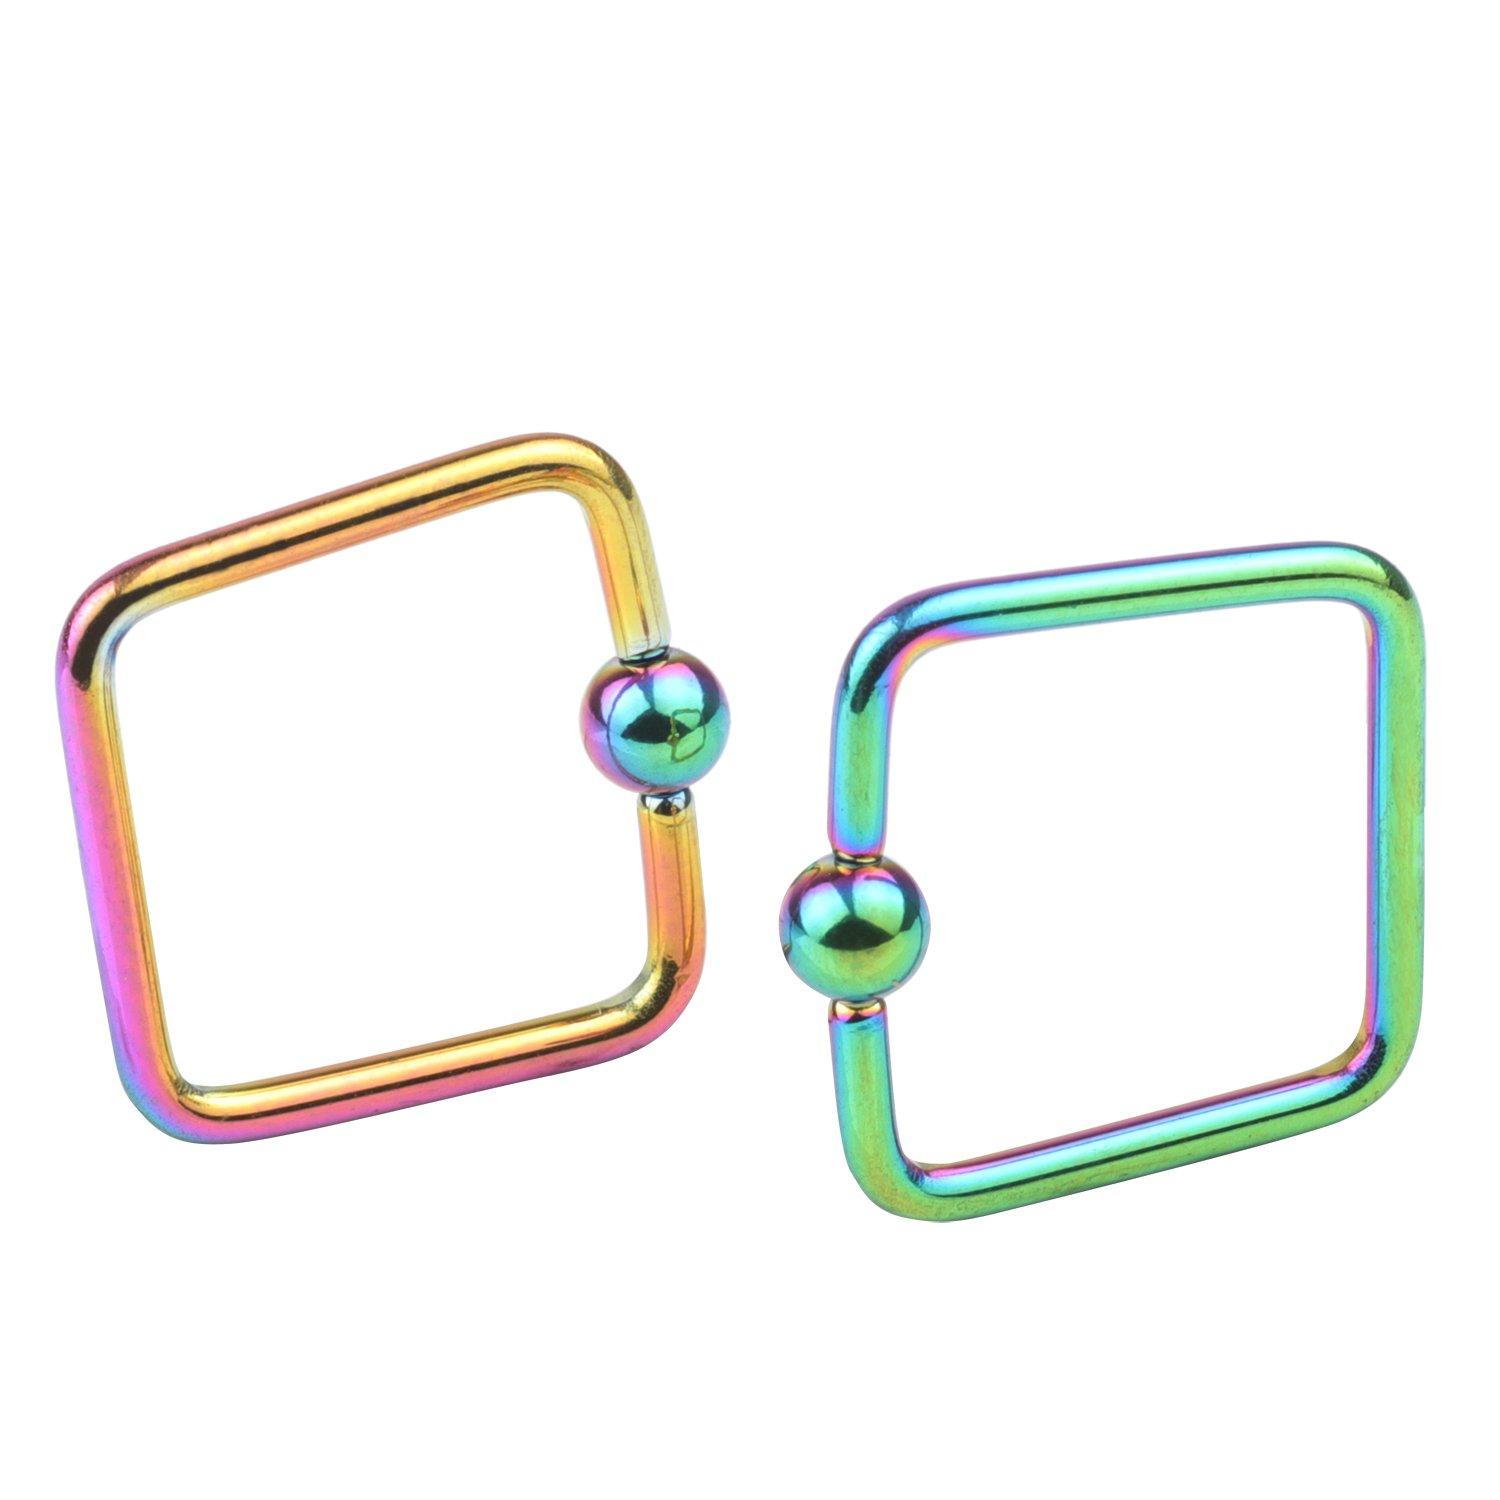 FORYOU FASHION Stainless Steel 16G 10mm CBR Ring Body Piercing Earring Hoop Rings